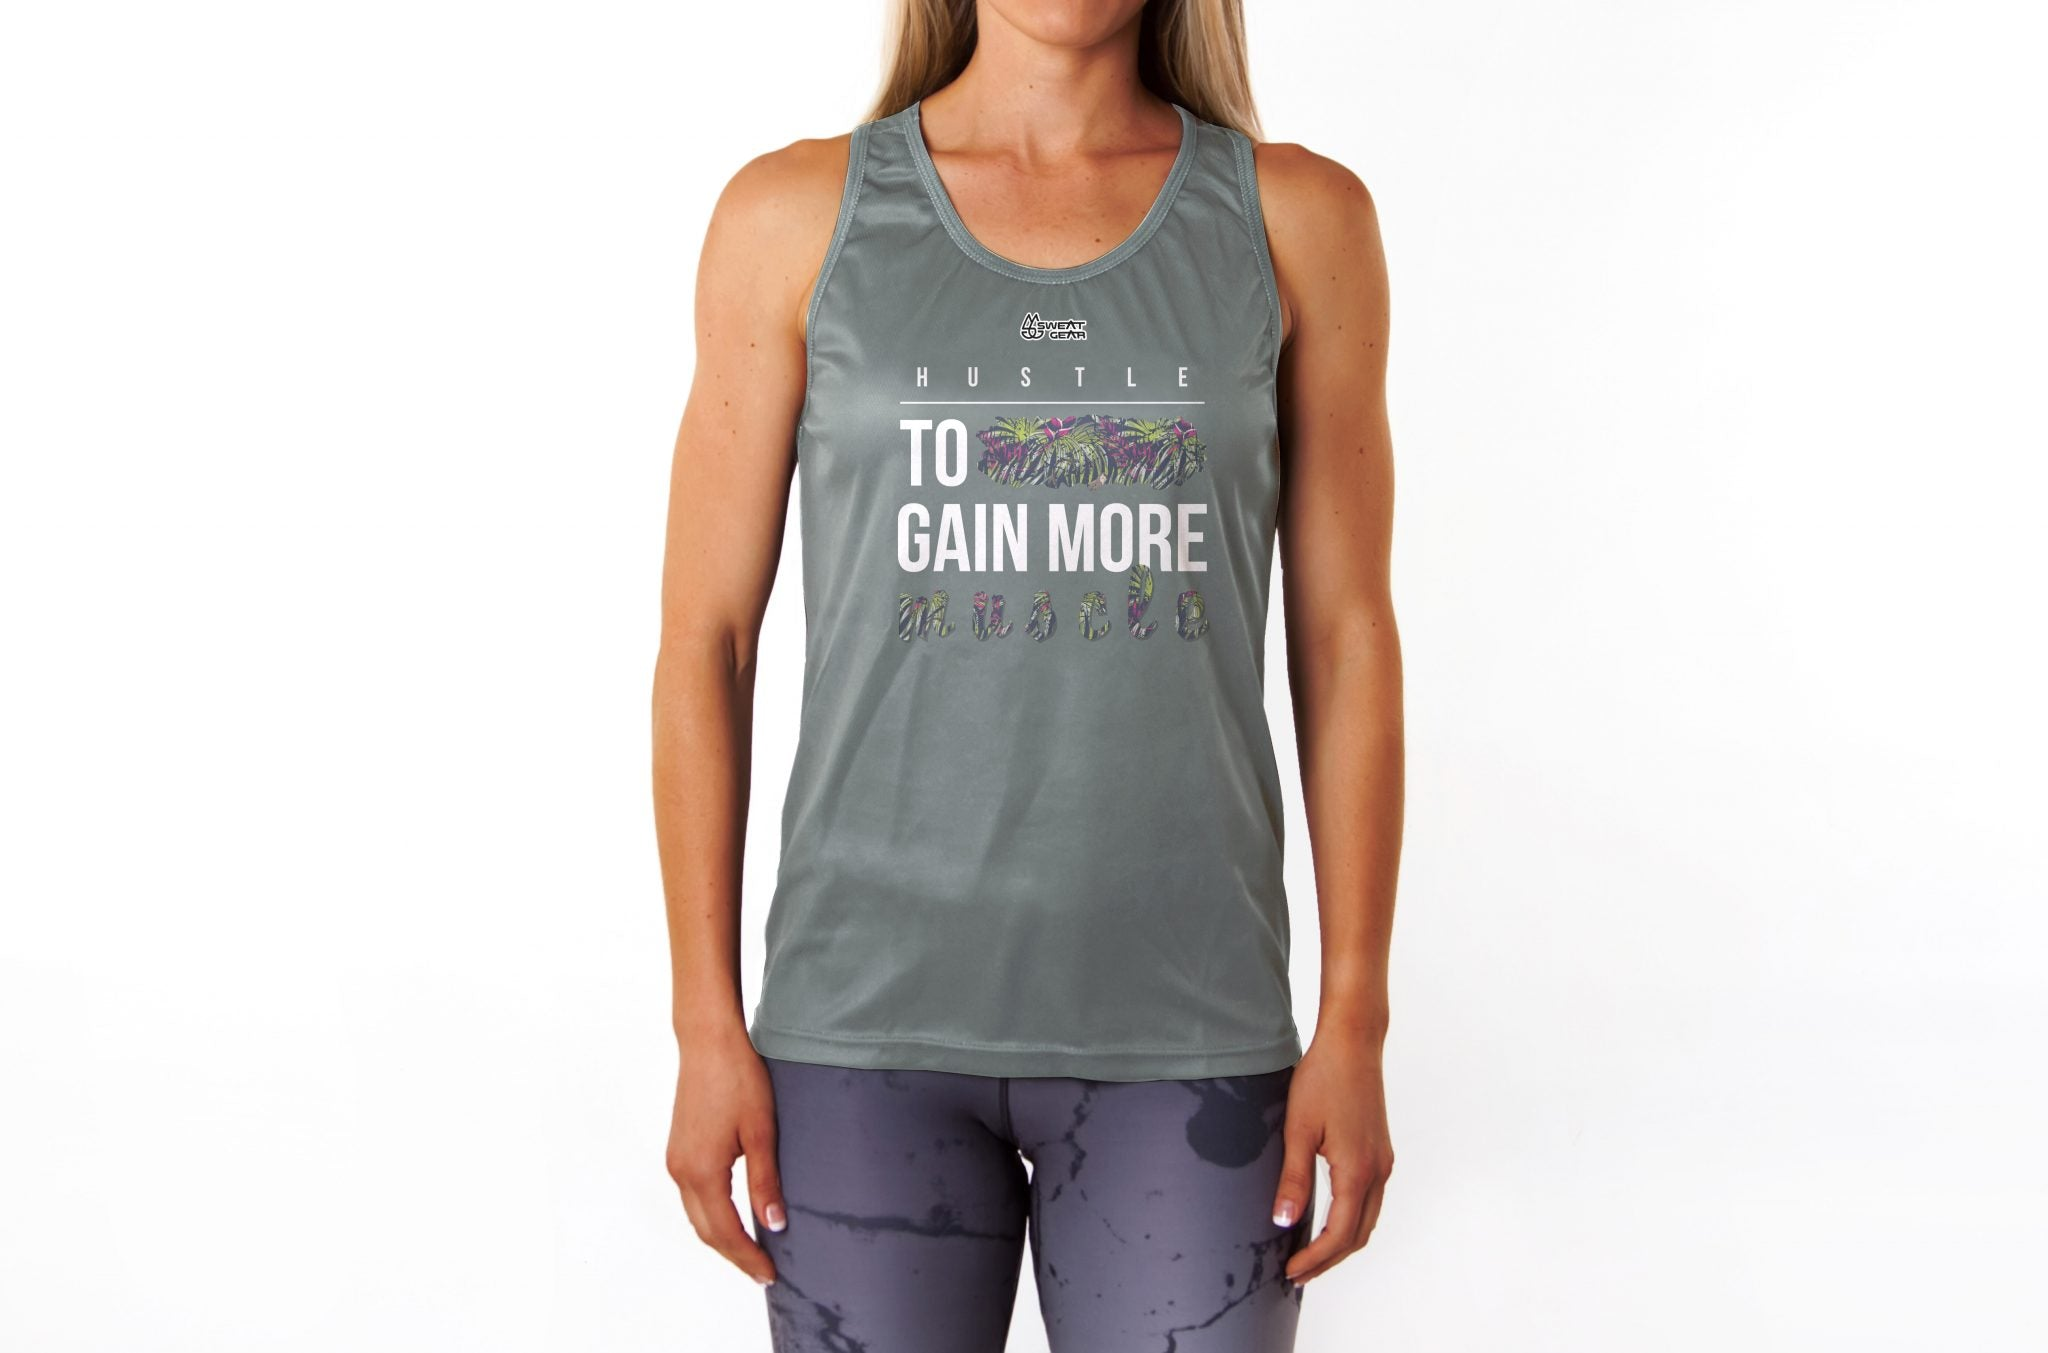 Hustle To Gain More Muscle Vest (Sweatgear)